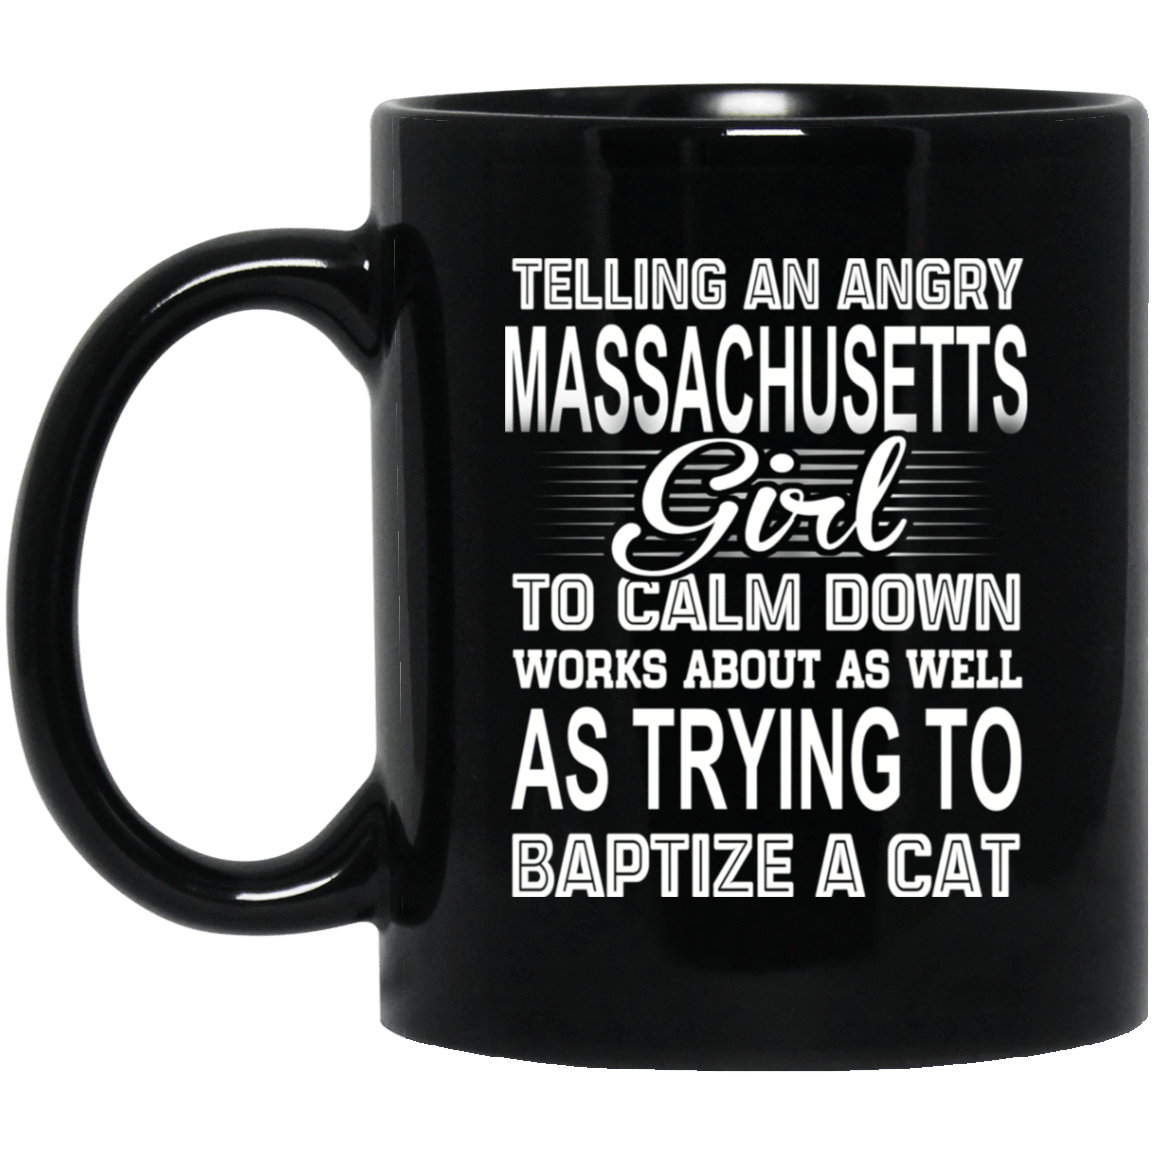 Telling An Angry Massachusetts Girl To Calm Down Works About As Well As Trying To Baptize A Cat Mug 1065-10181-76151635-49307 - Tee Ript